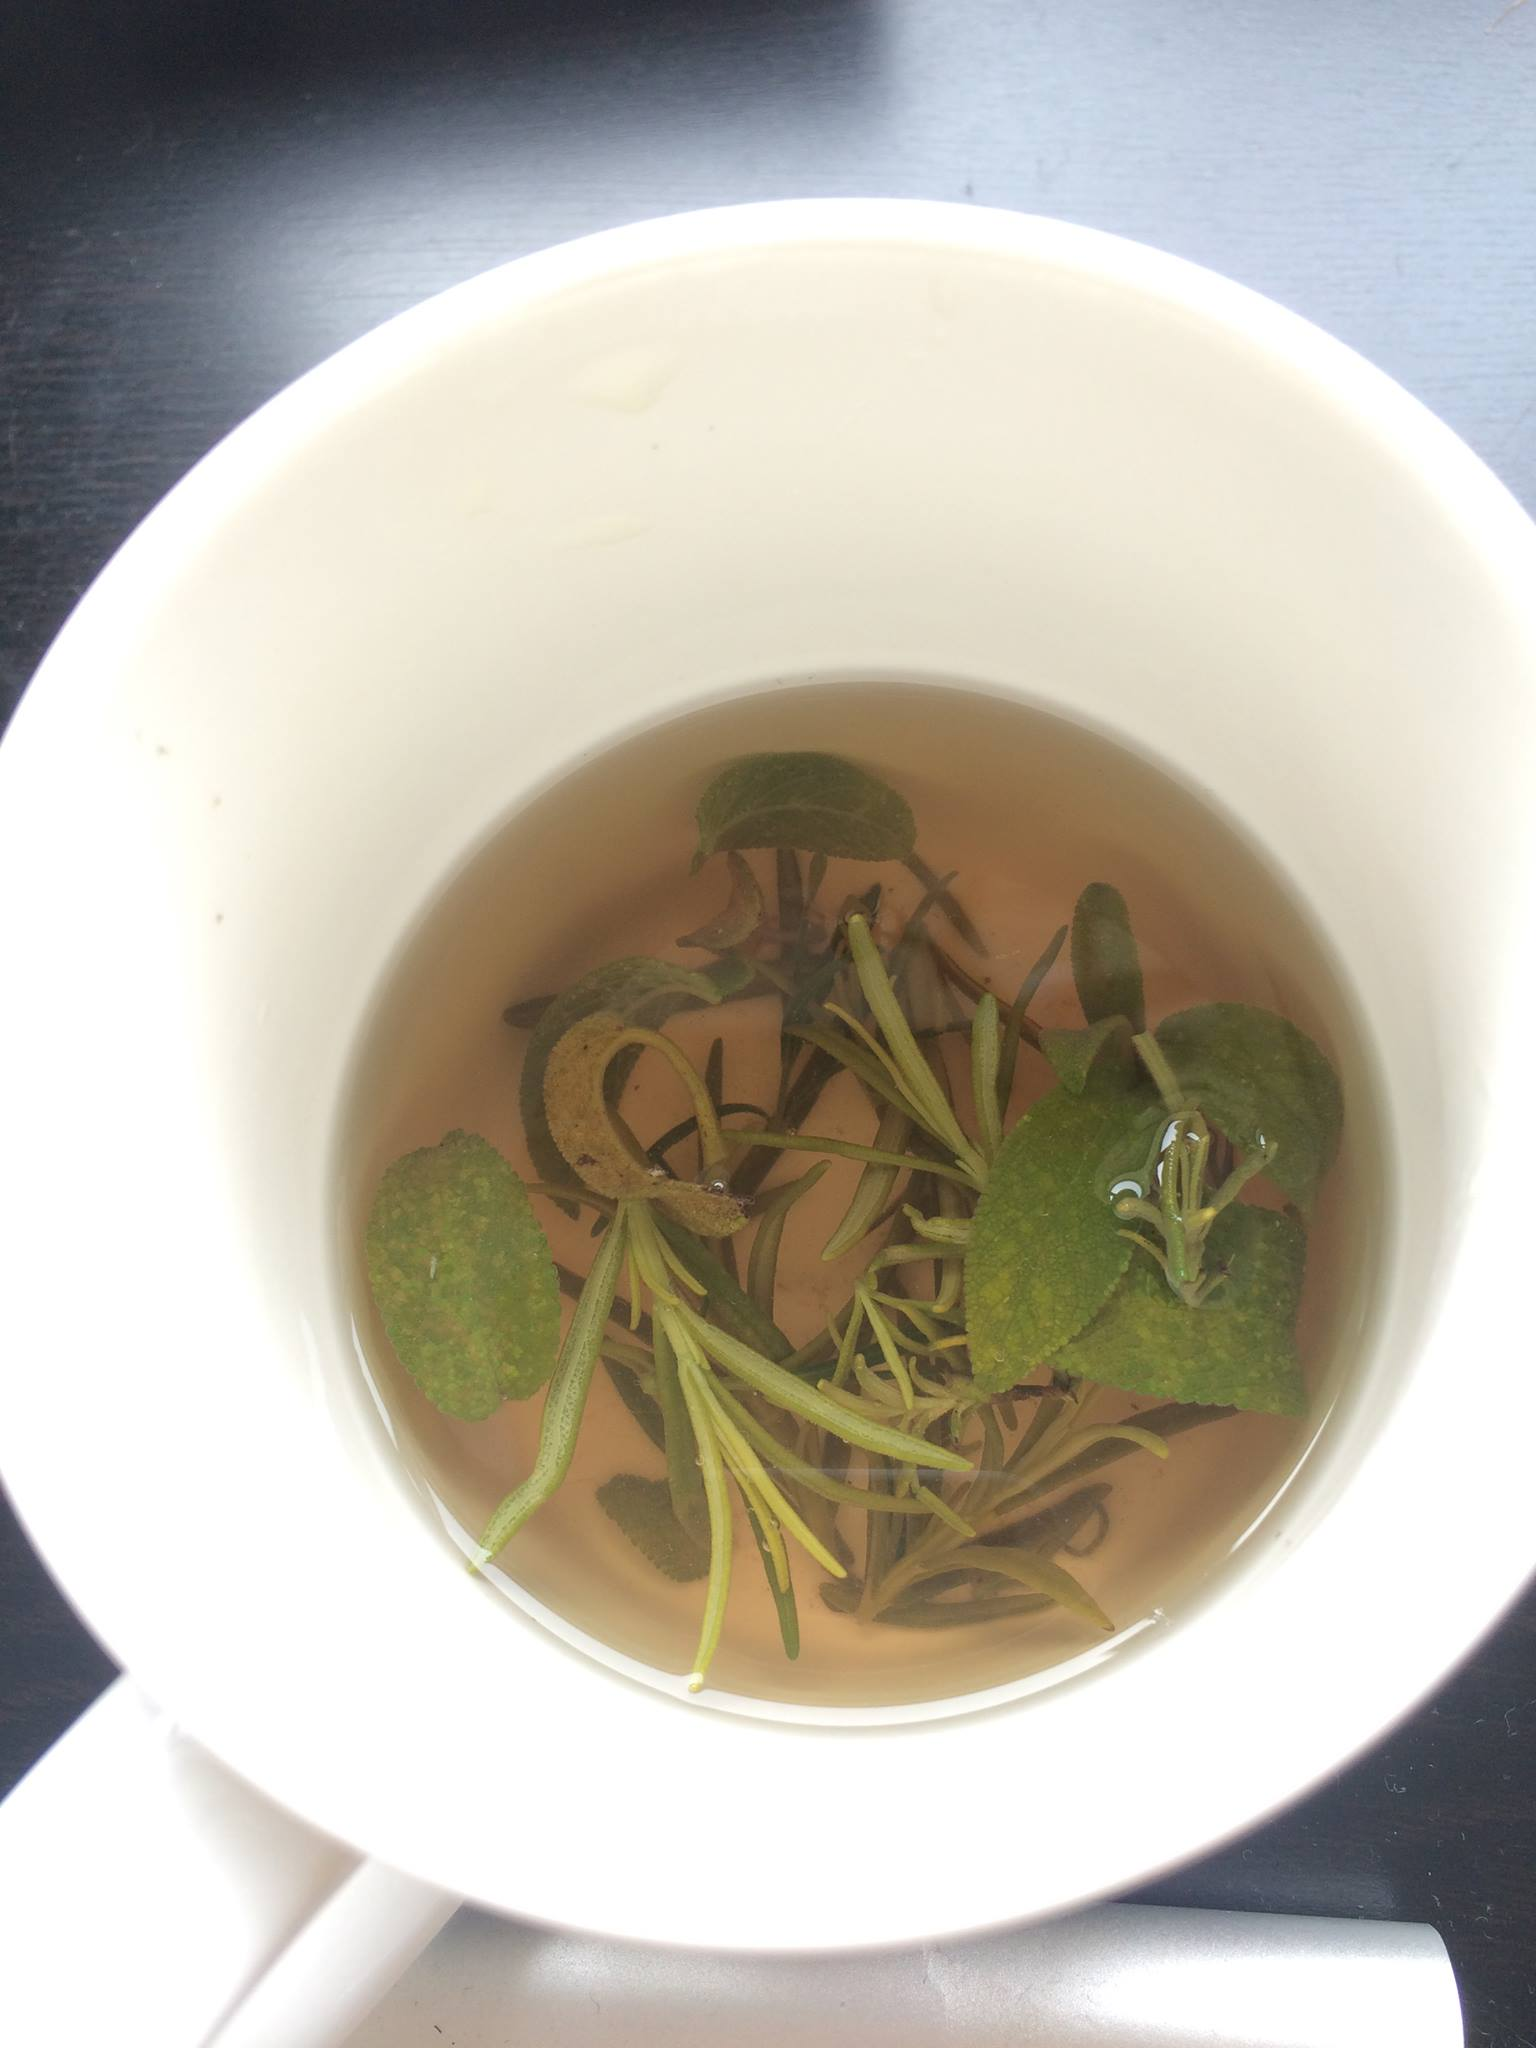 Fresh herbal teas are just one way to increase your daily antioxidant intake.